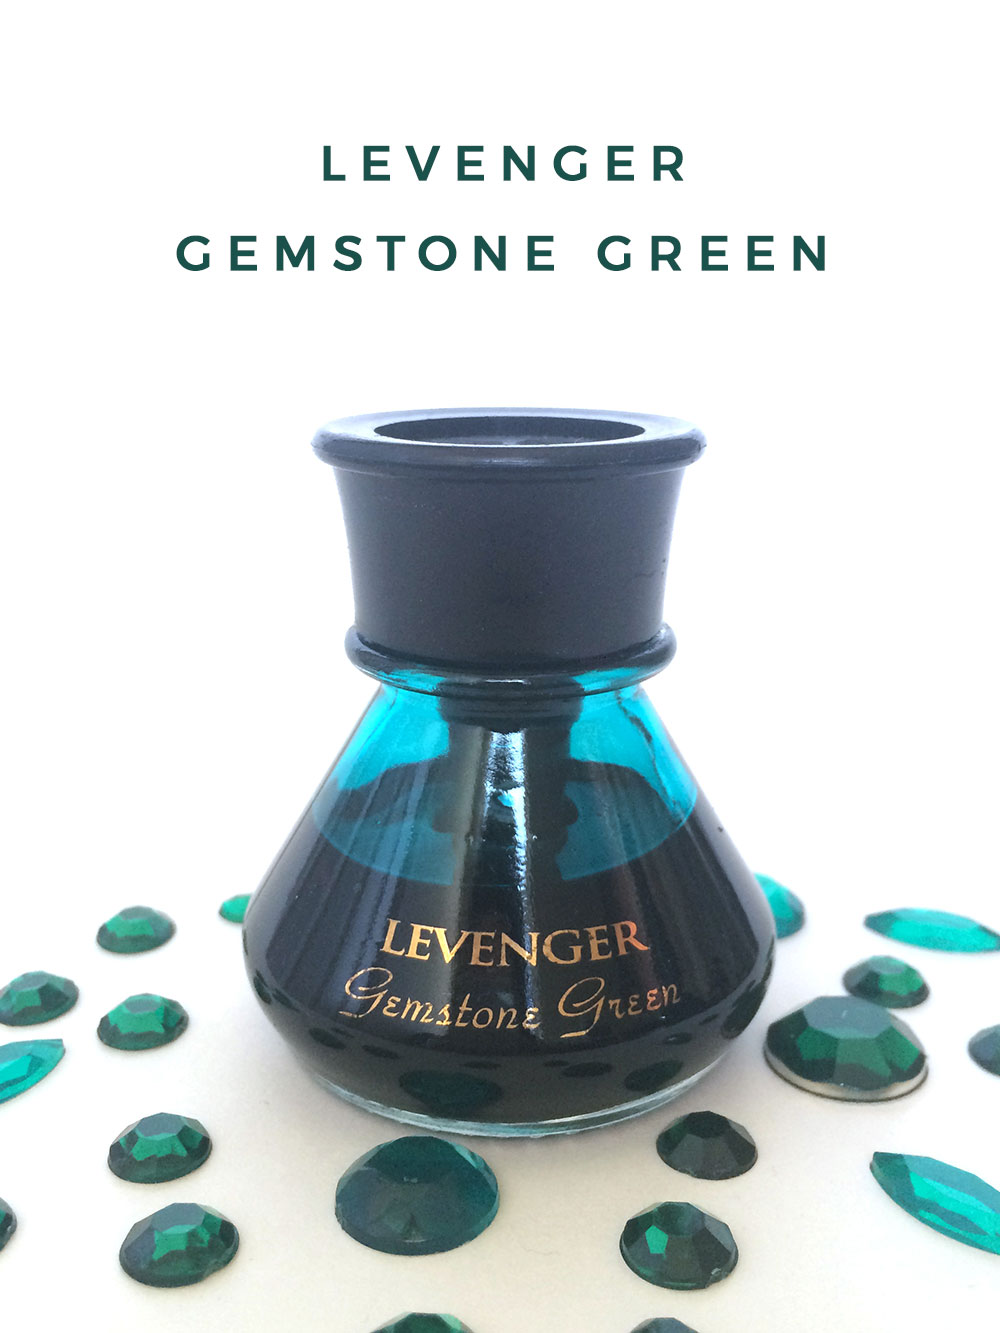 Levenger Gemstone Green Review